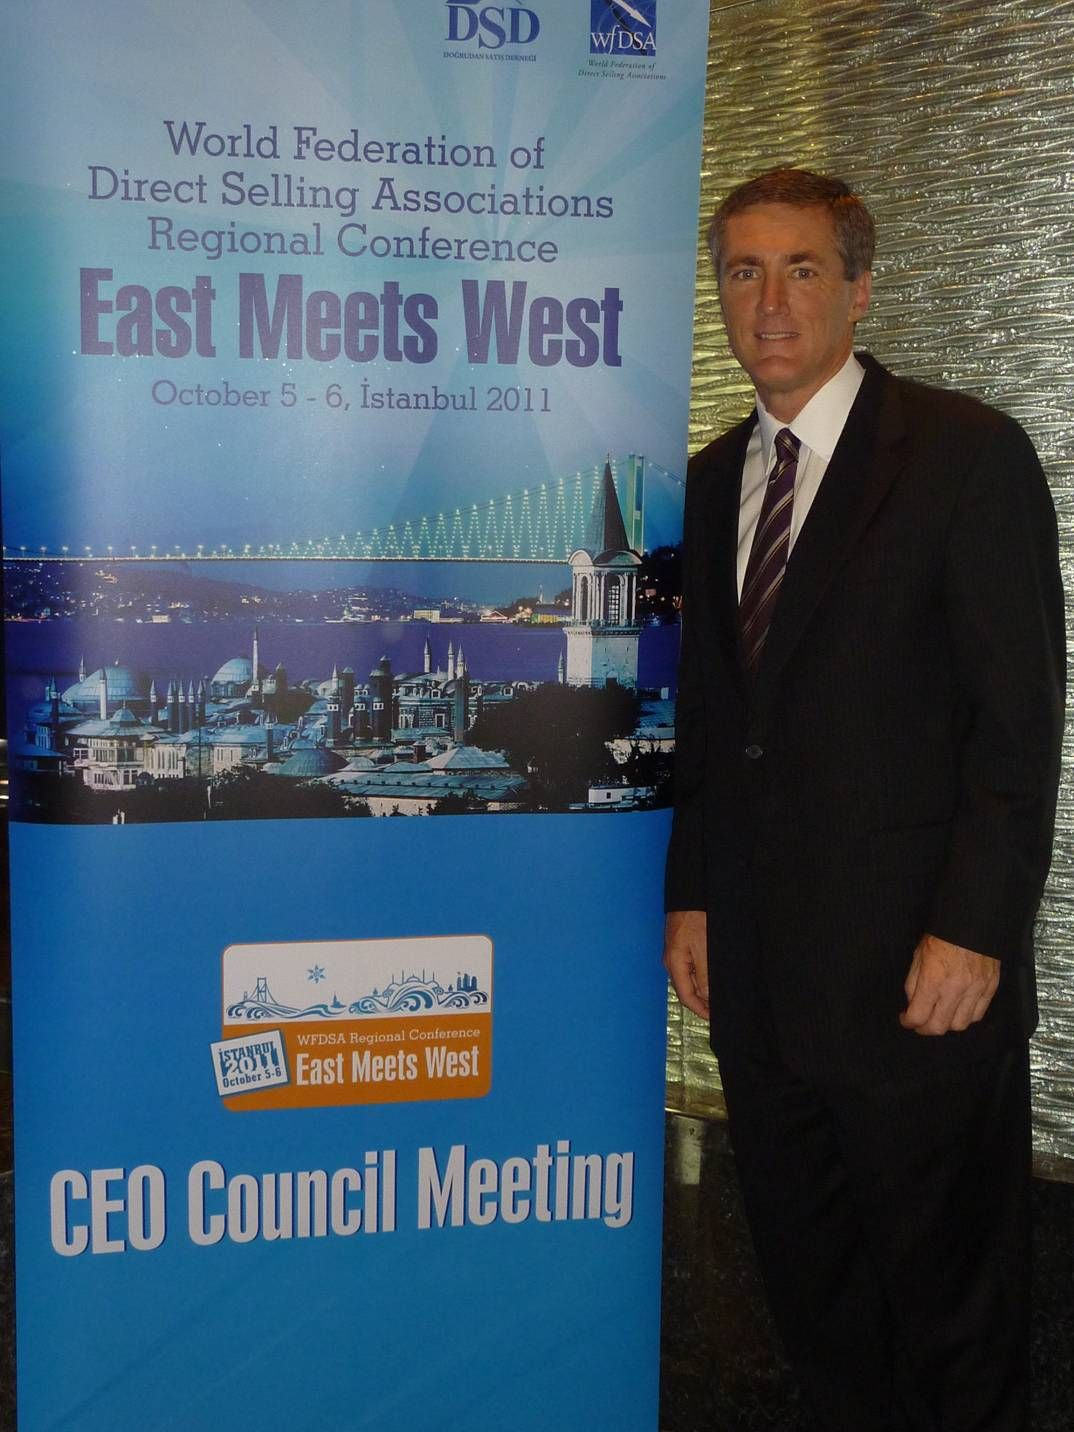 4Life President Attends 2011 WFDSA CEO Council Meeting 10/6/2011